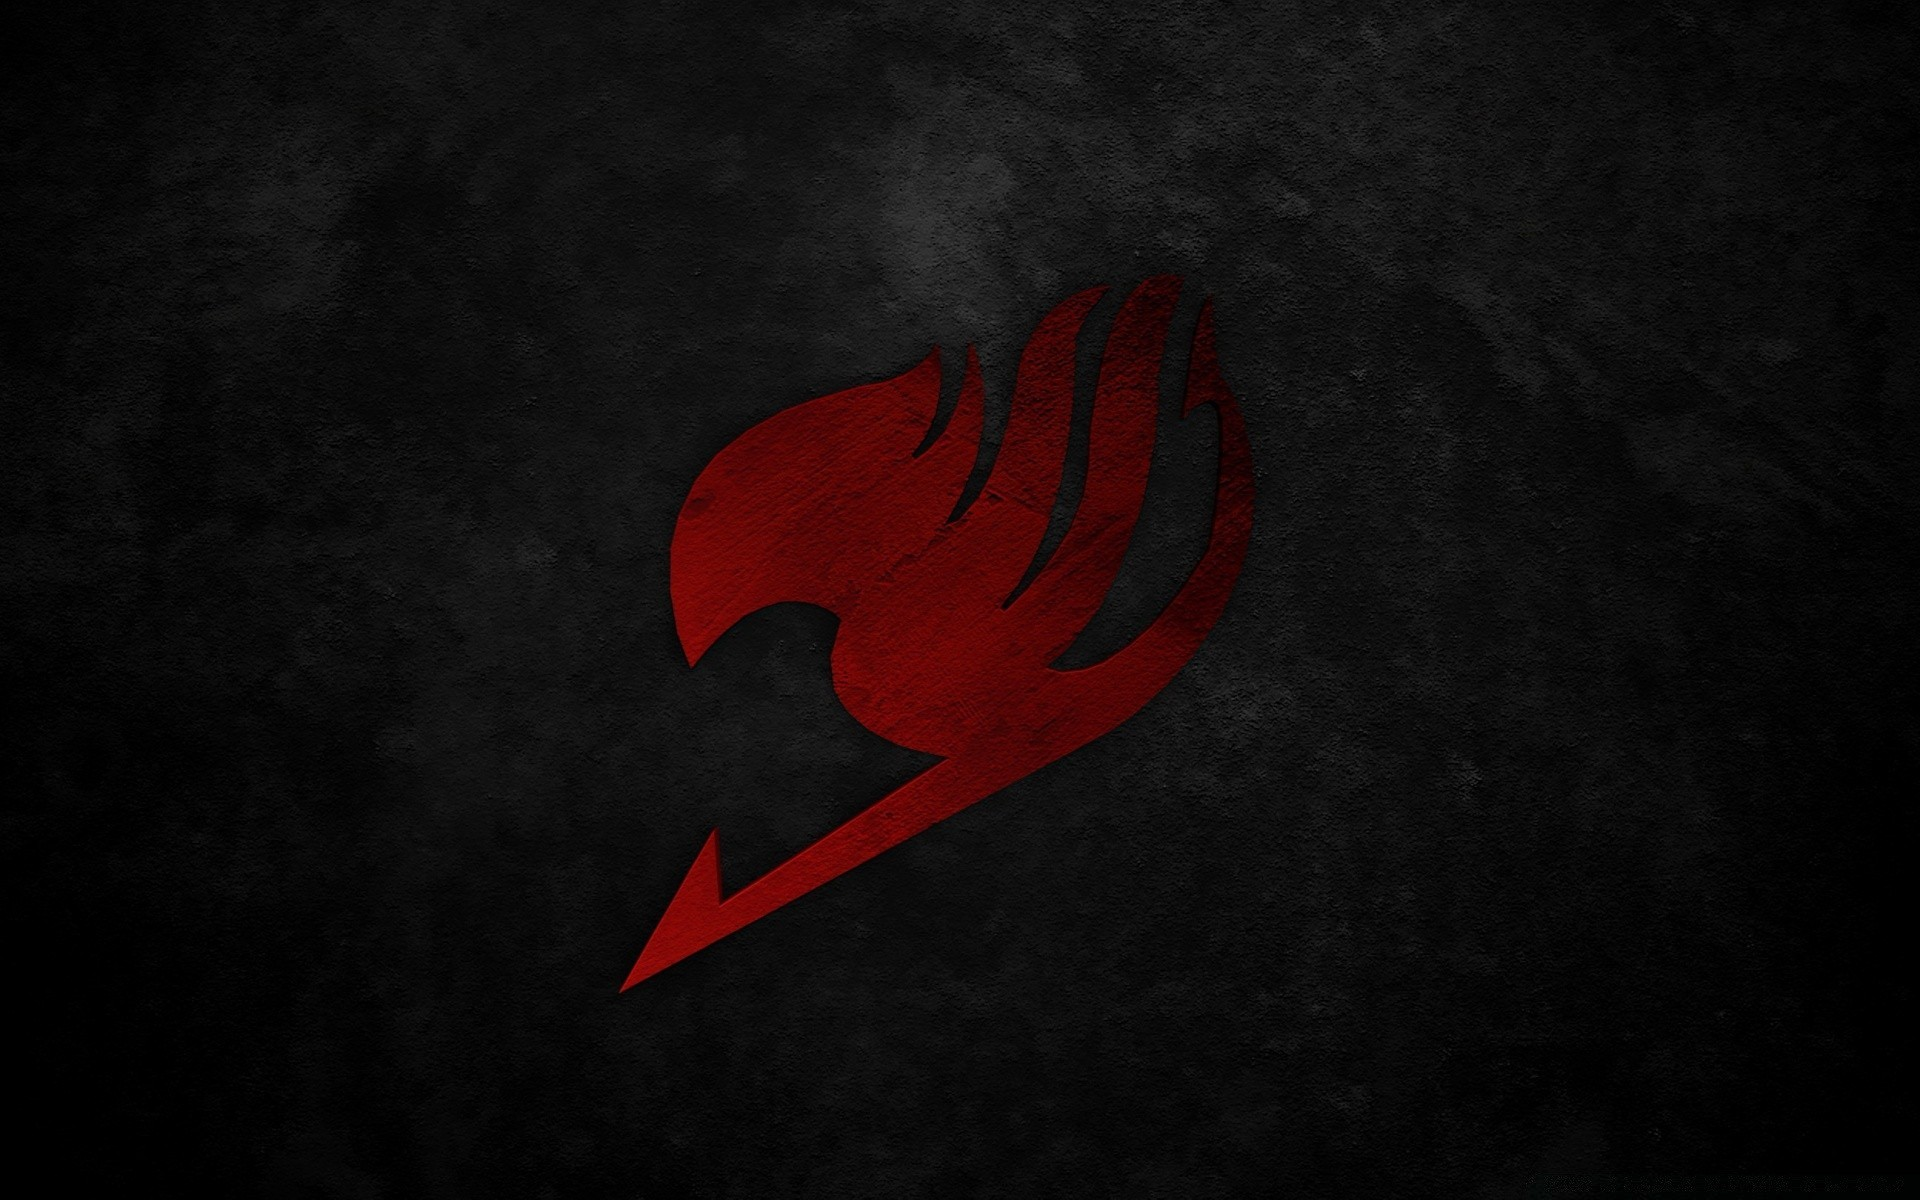 Fairy tail symbol android wallpapers for free biocorpaavc Image collections